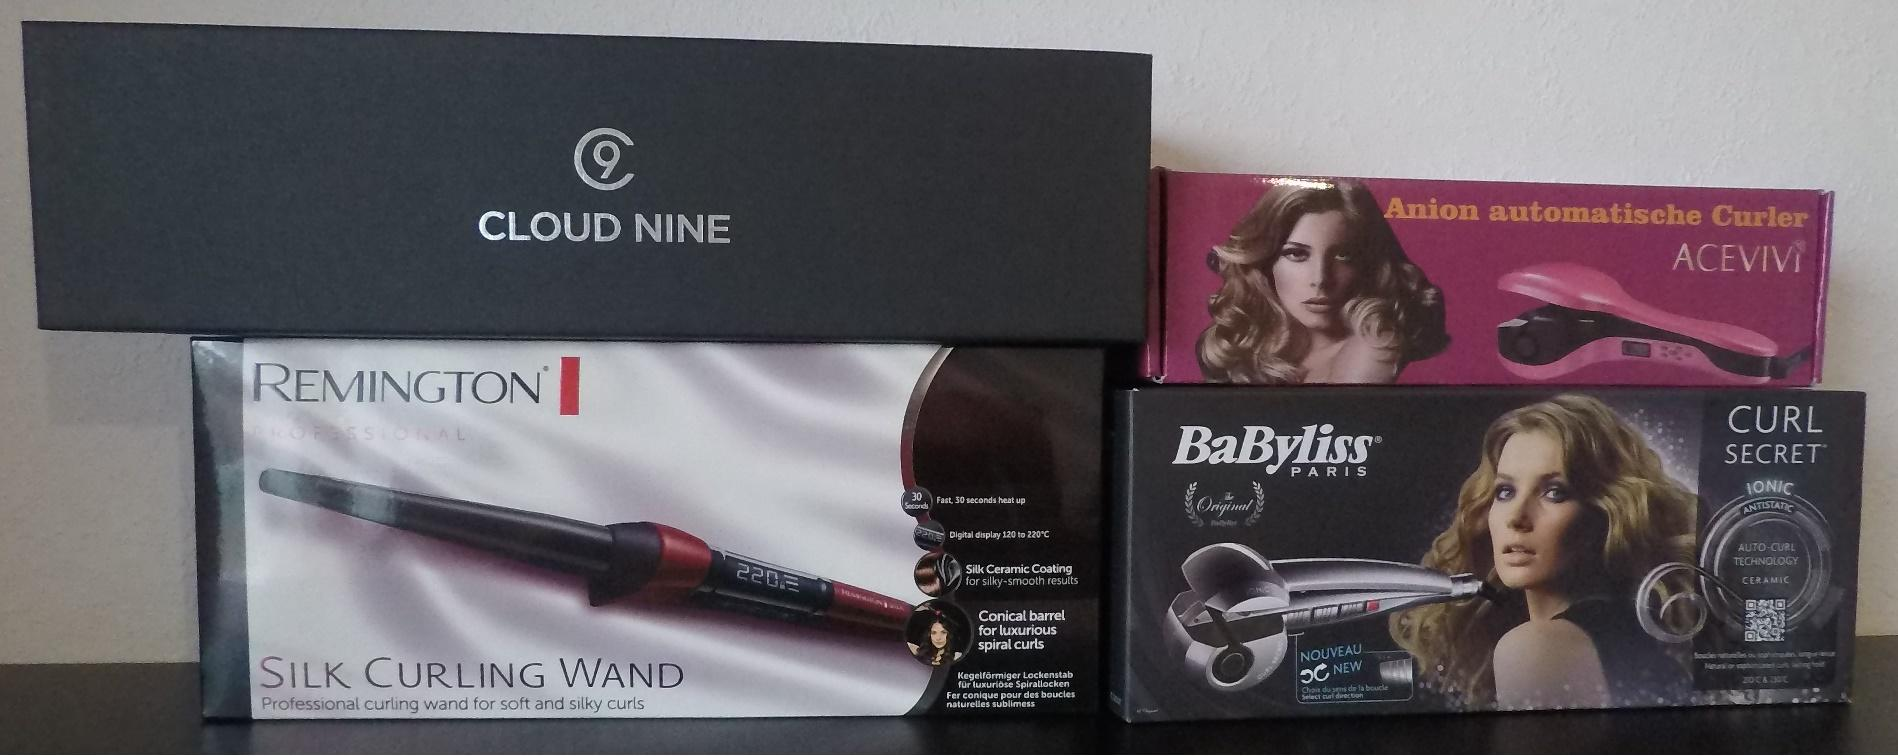 Acevivi Lockenstab, Cloud Nine Wand, Babyliss Curl E1200C und Remington Silk Lockendreher